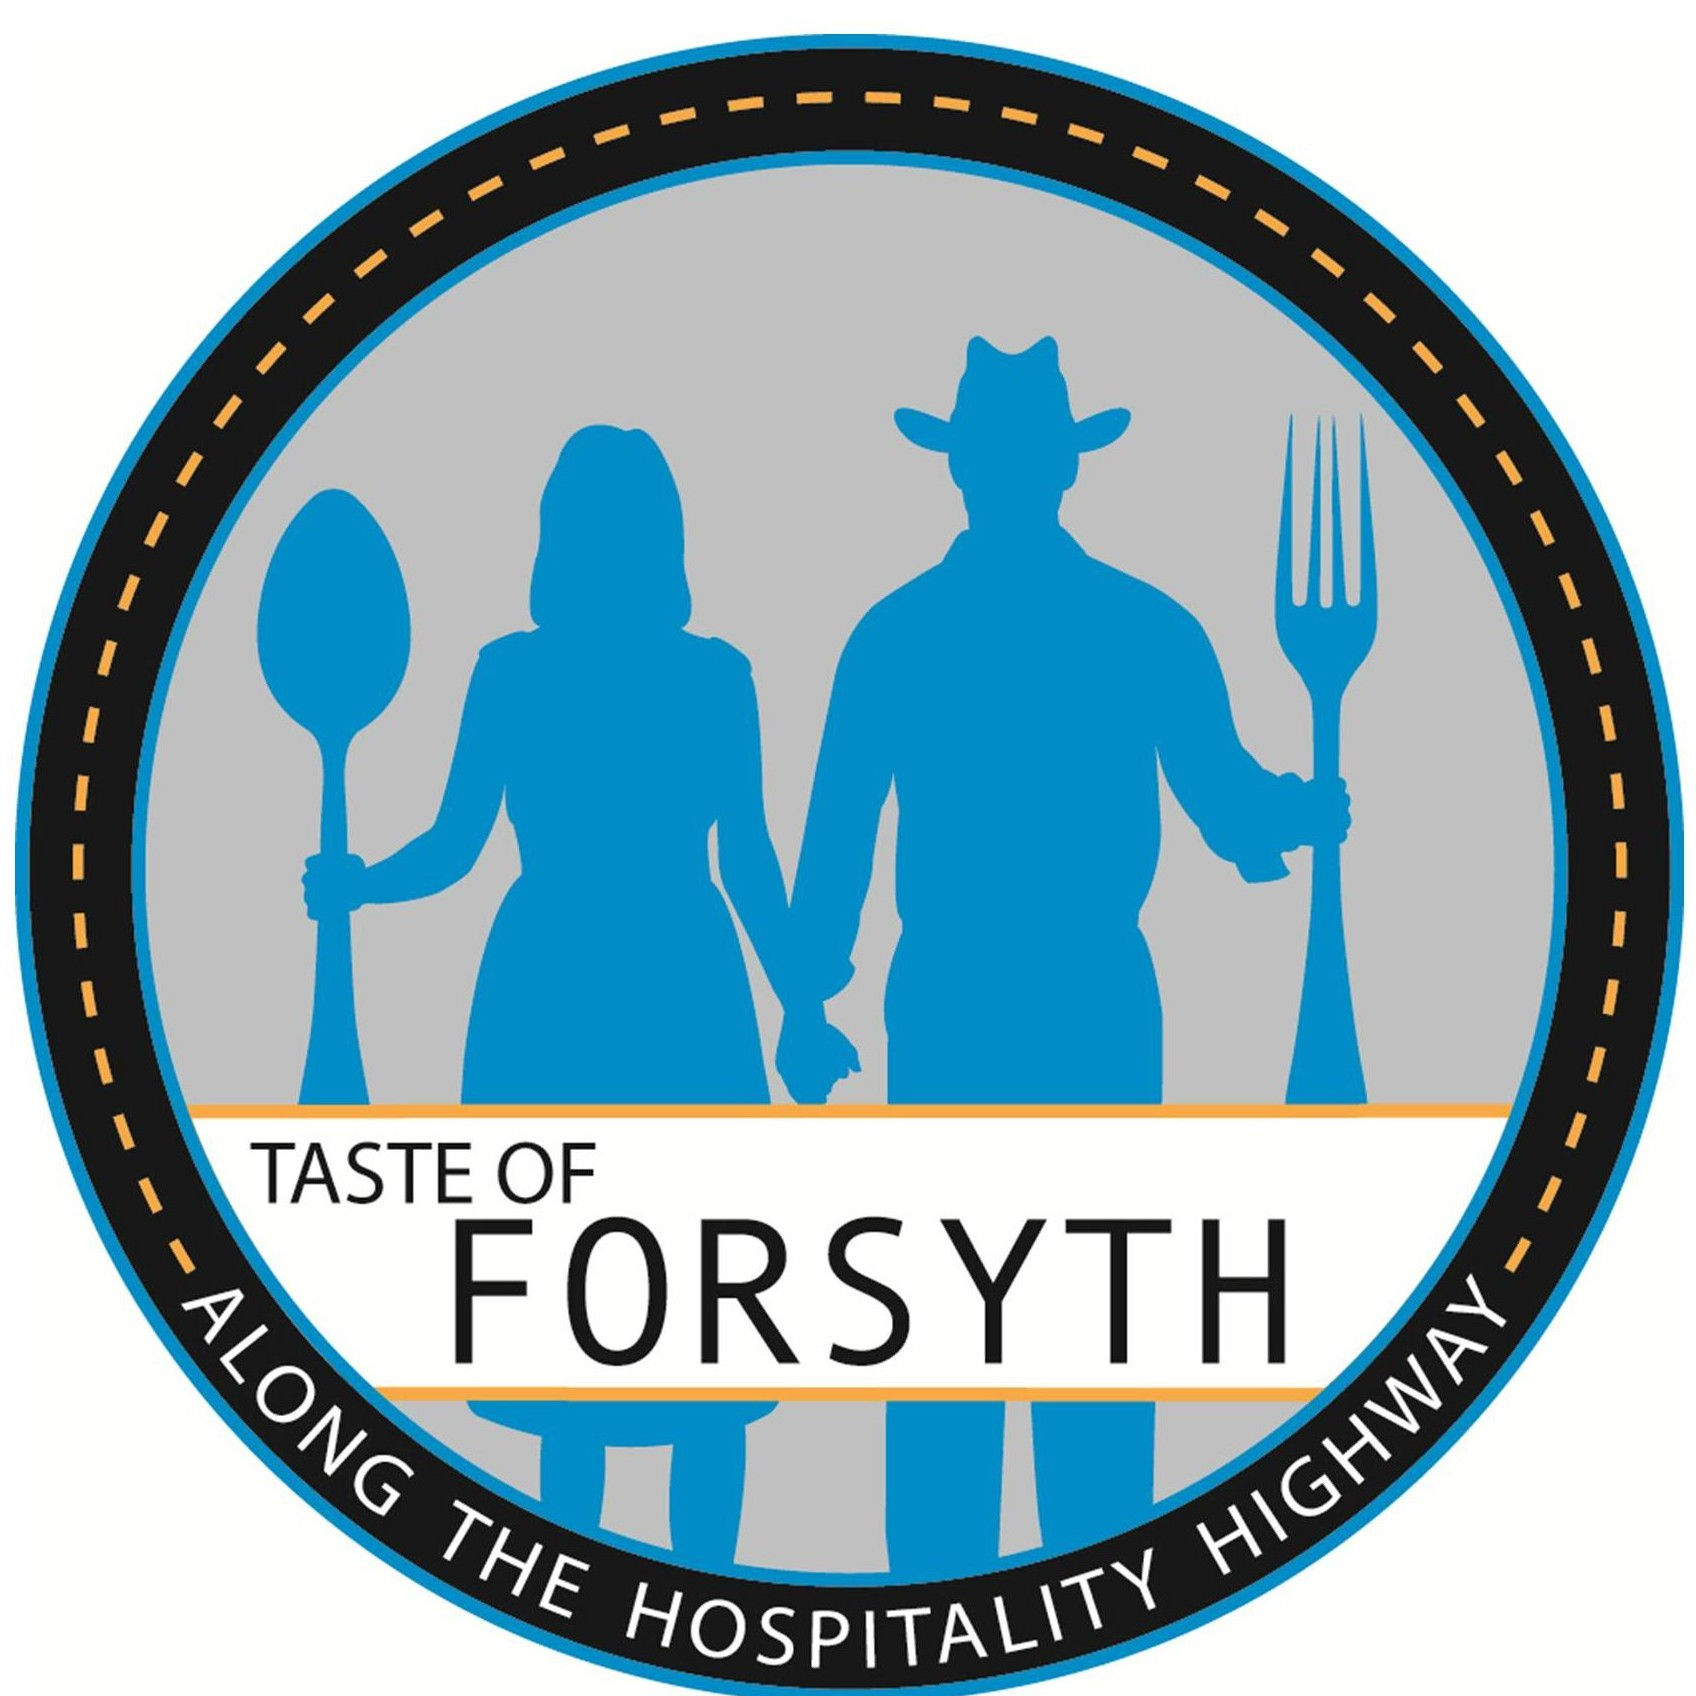 2014 Taste of Forsyth